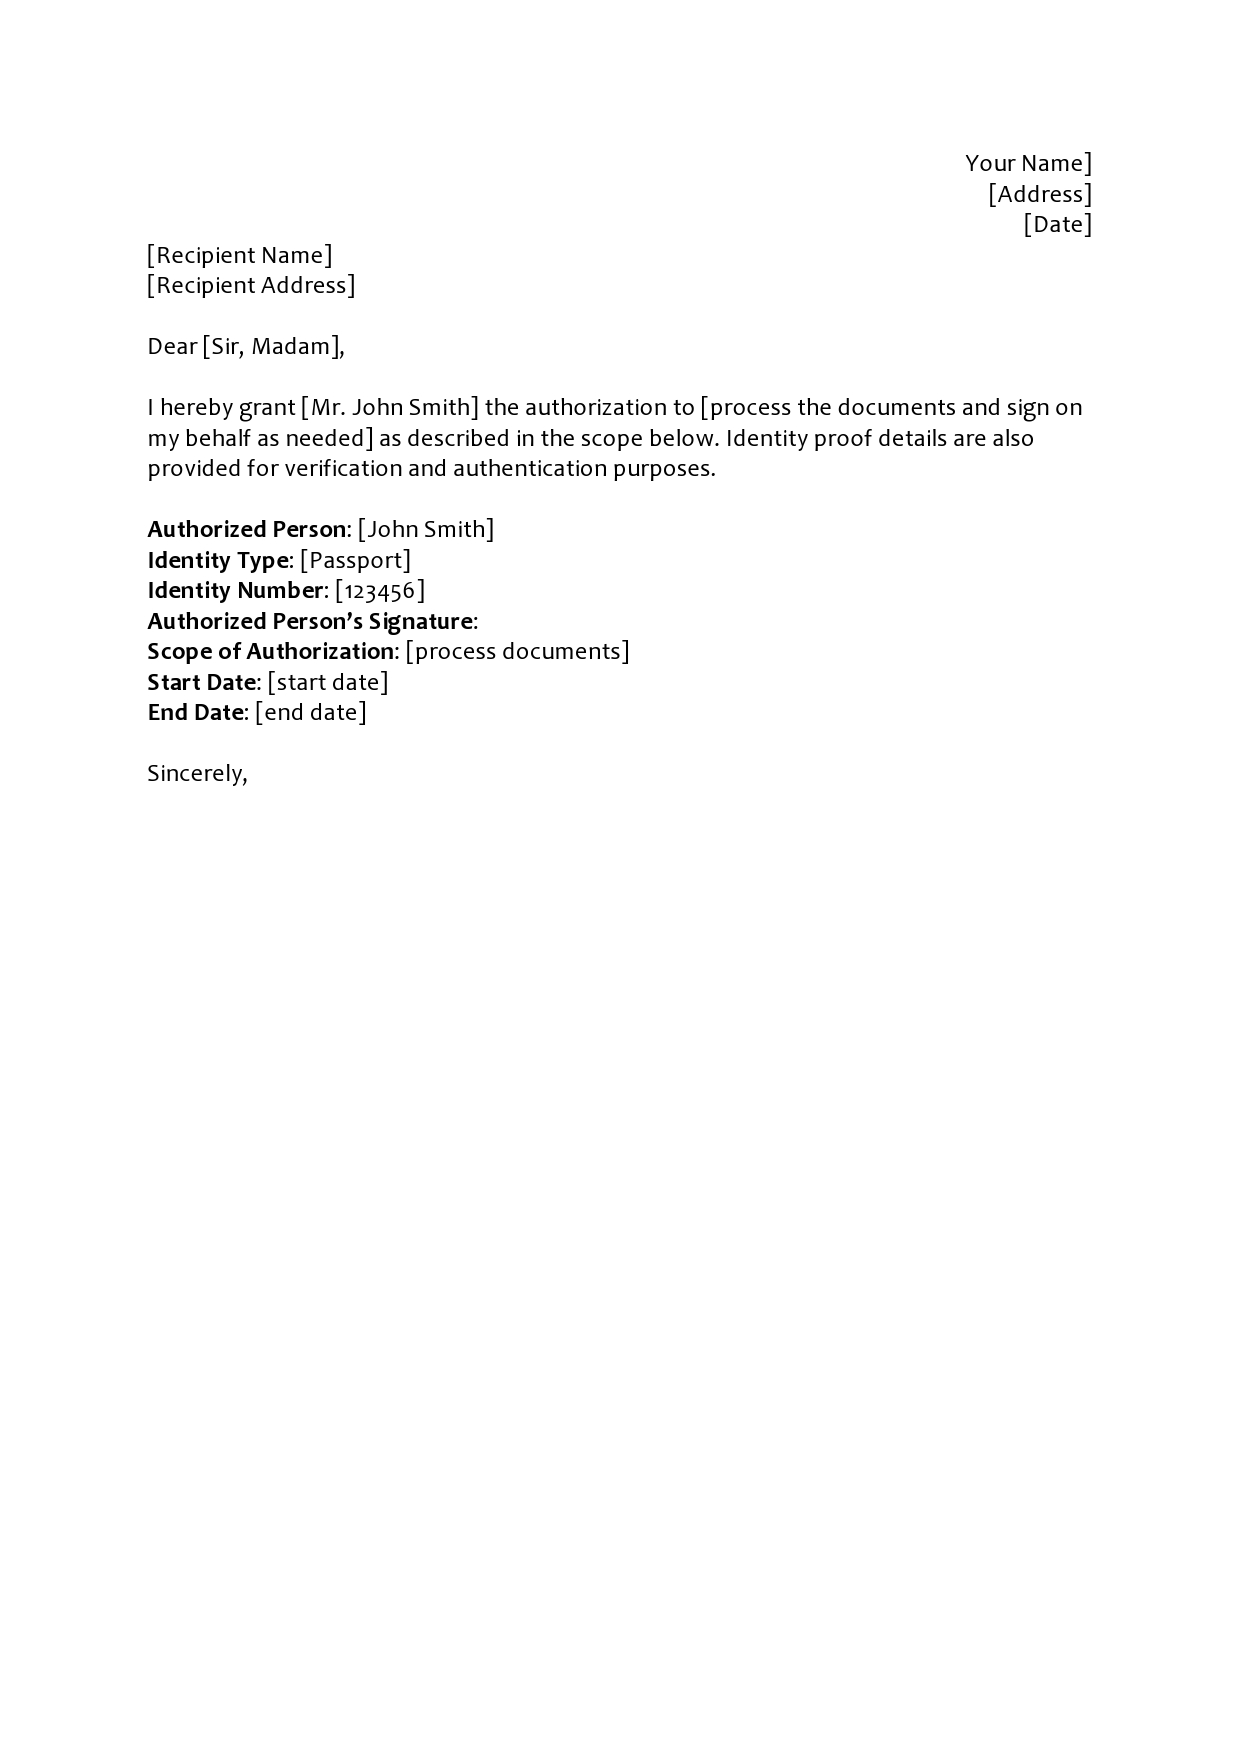 Authorization Letter Sample To Process Documents from templatearchive.com